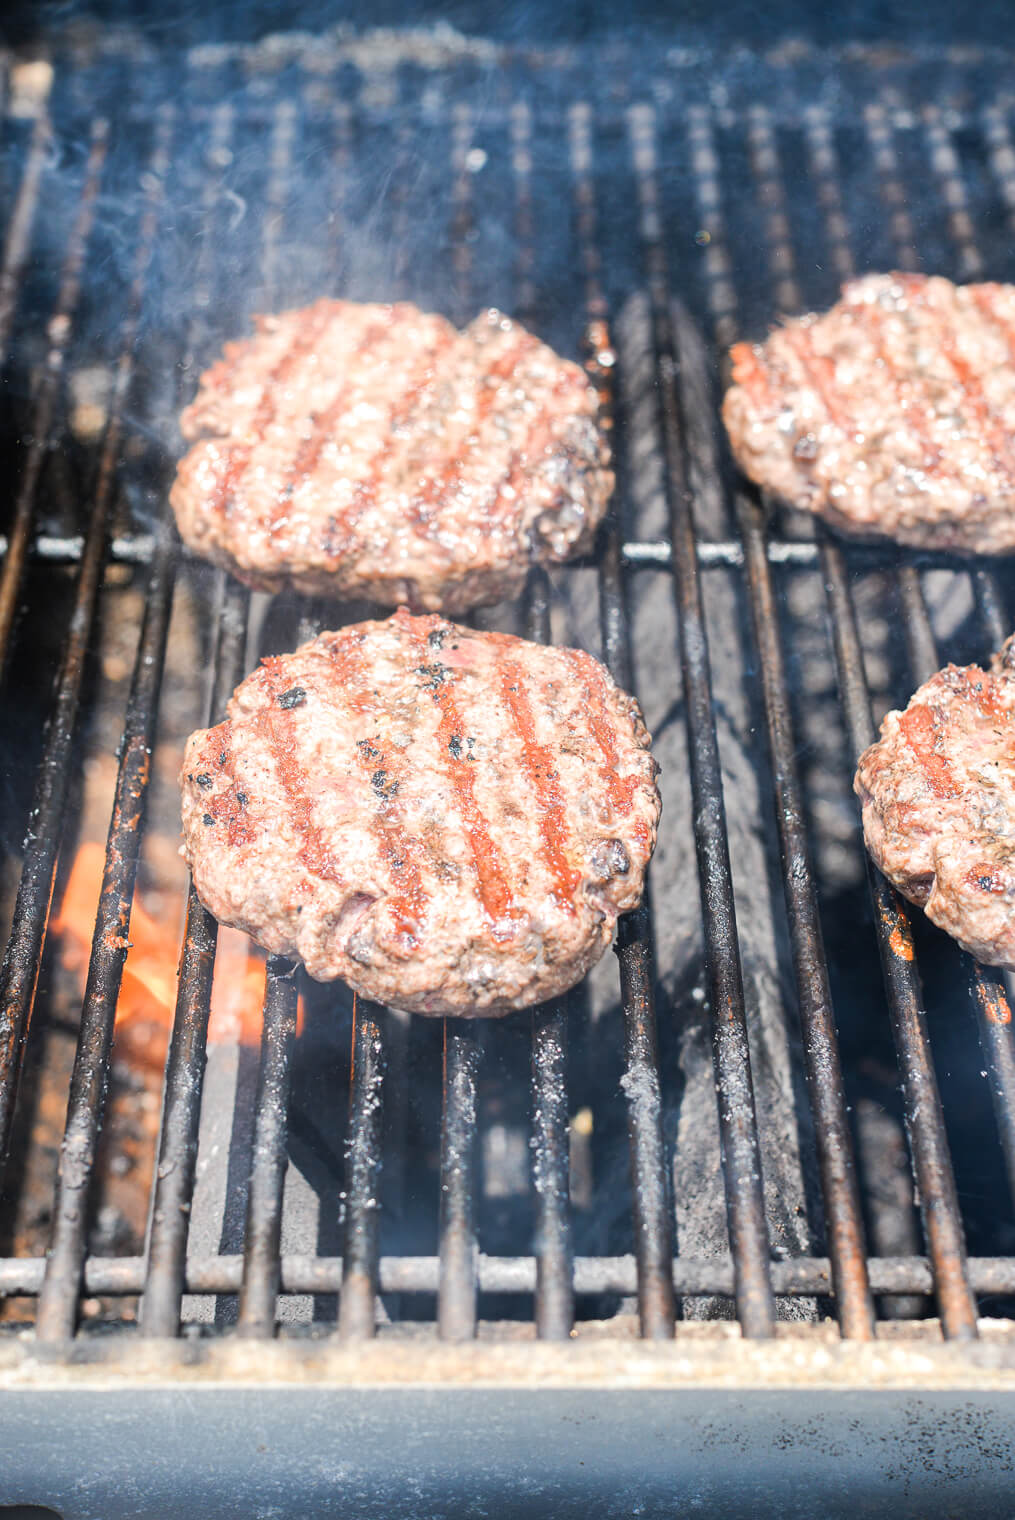 4 ground beef patties on the grill grates of a gas grill